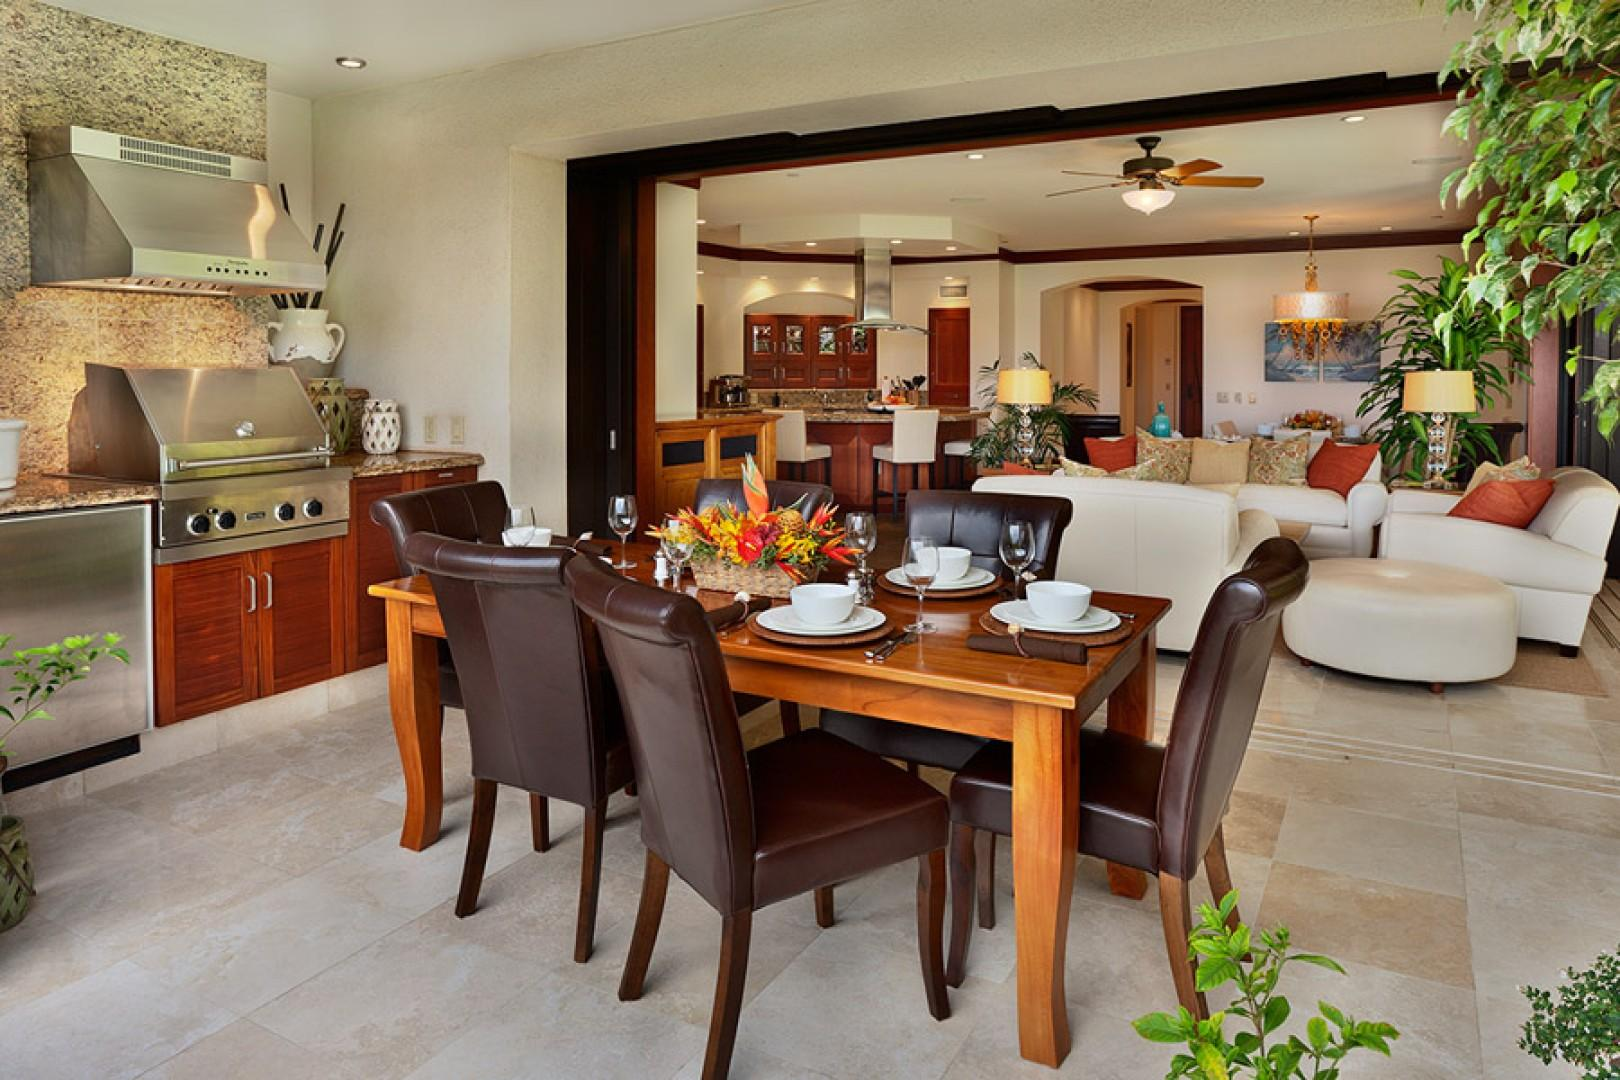 A view from the outdoor dining area into the living space.